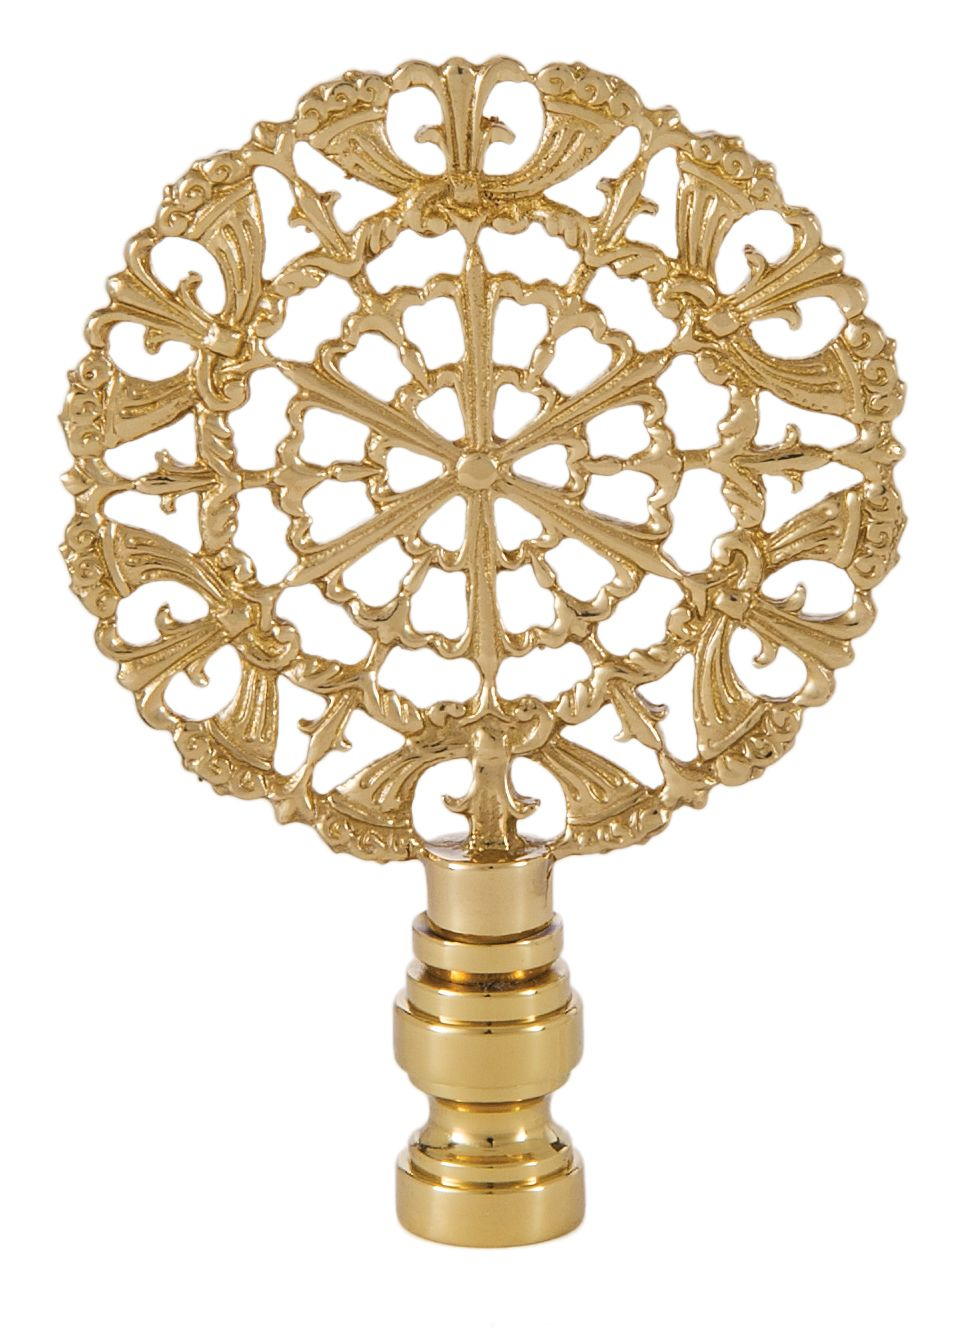 cast brass rose lamp finial 11341 | antique lamp supply | finials